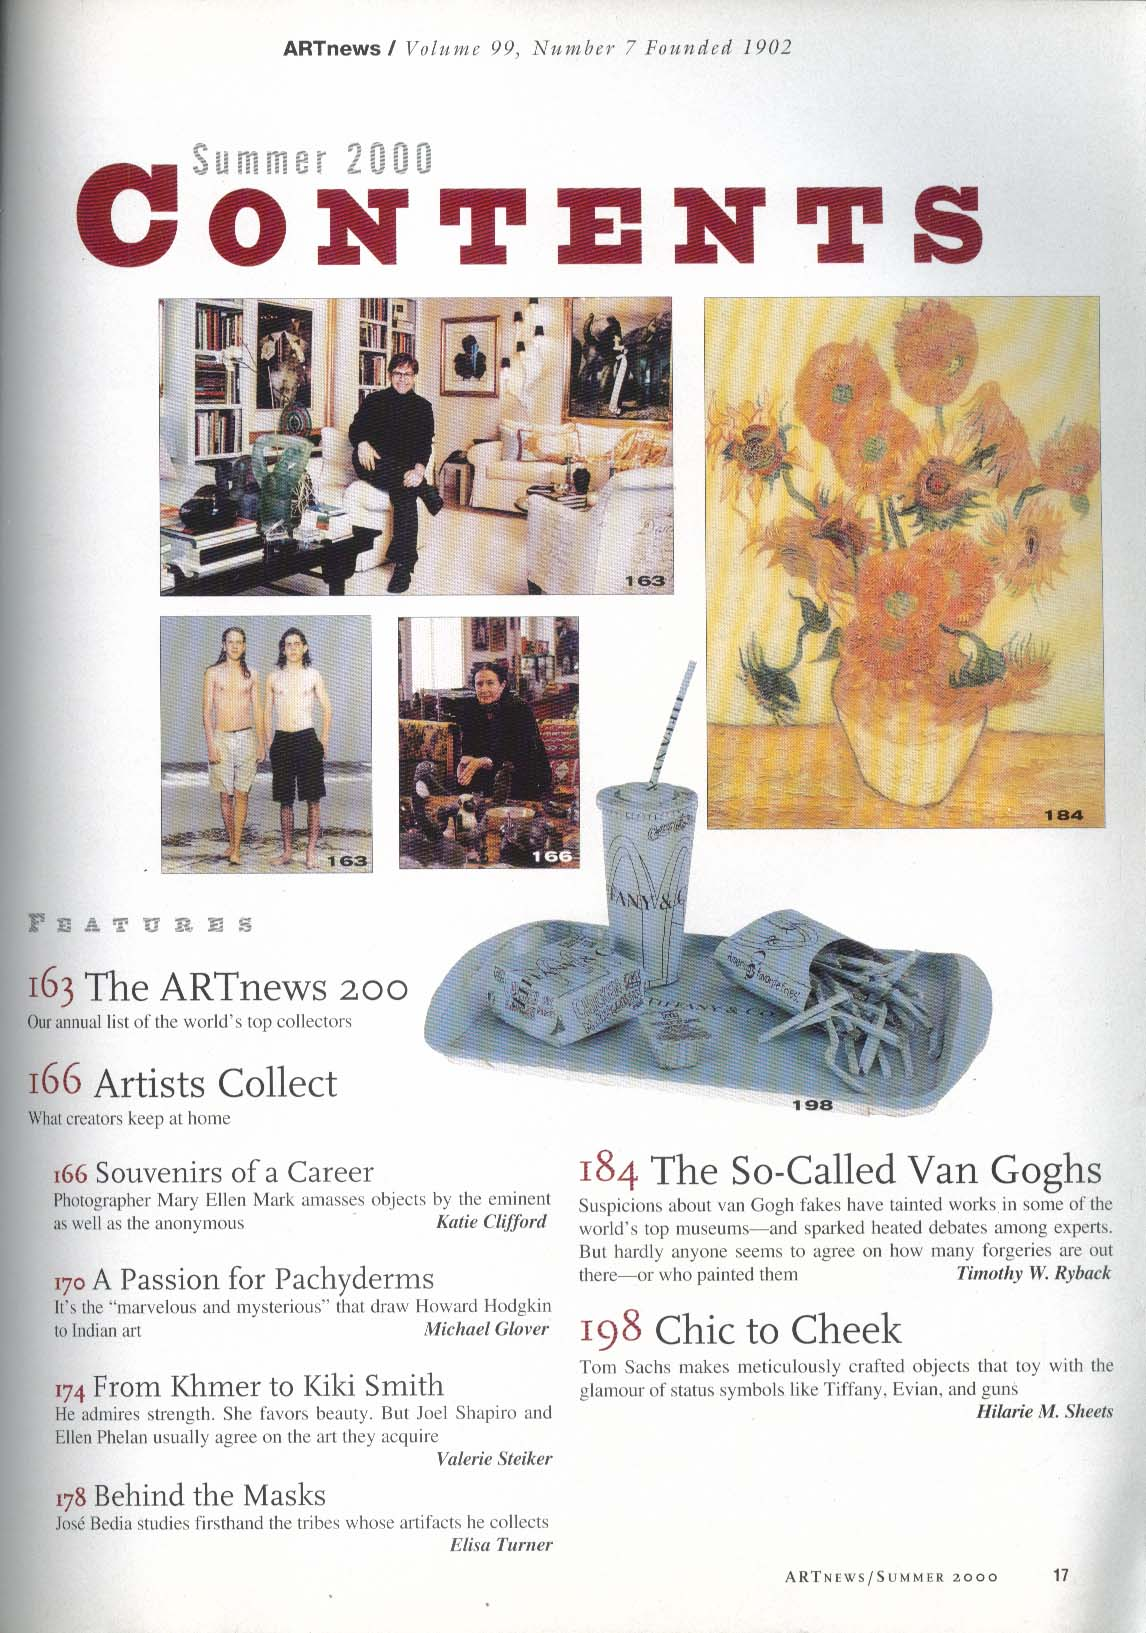 ARTnews Van Gogh Forgeries Agnes b Tom Sachs Pat Steir Kiki Smith Summer 2000